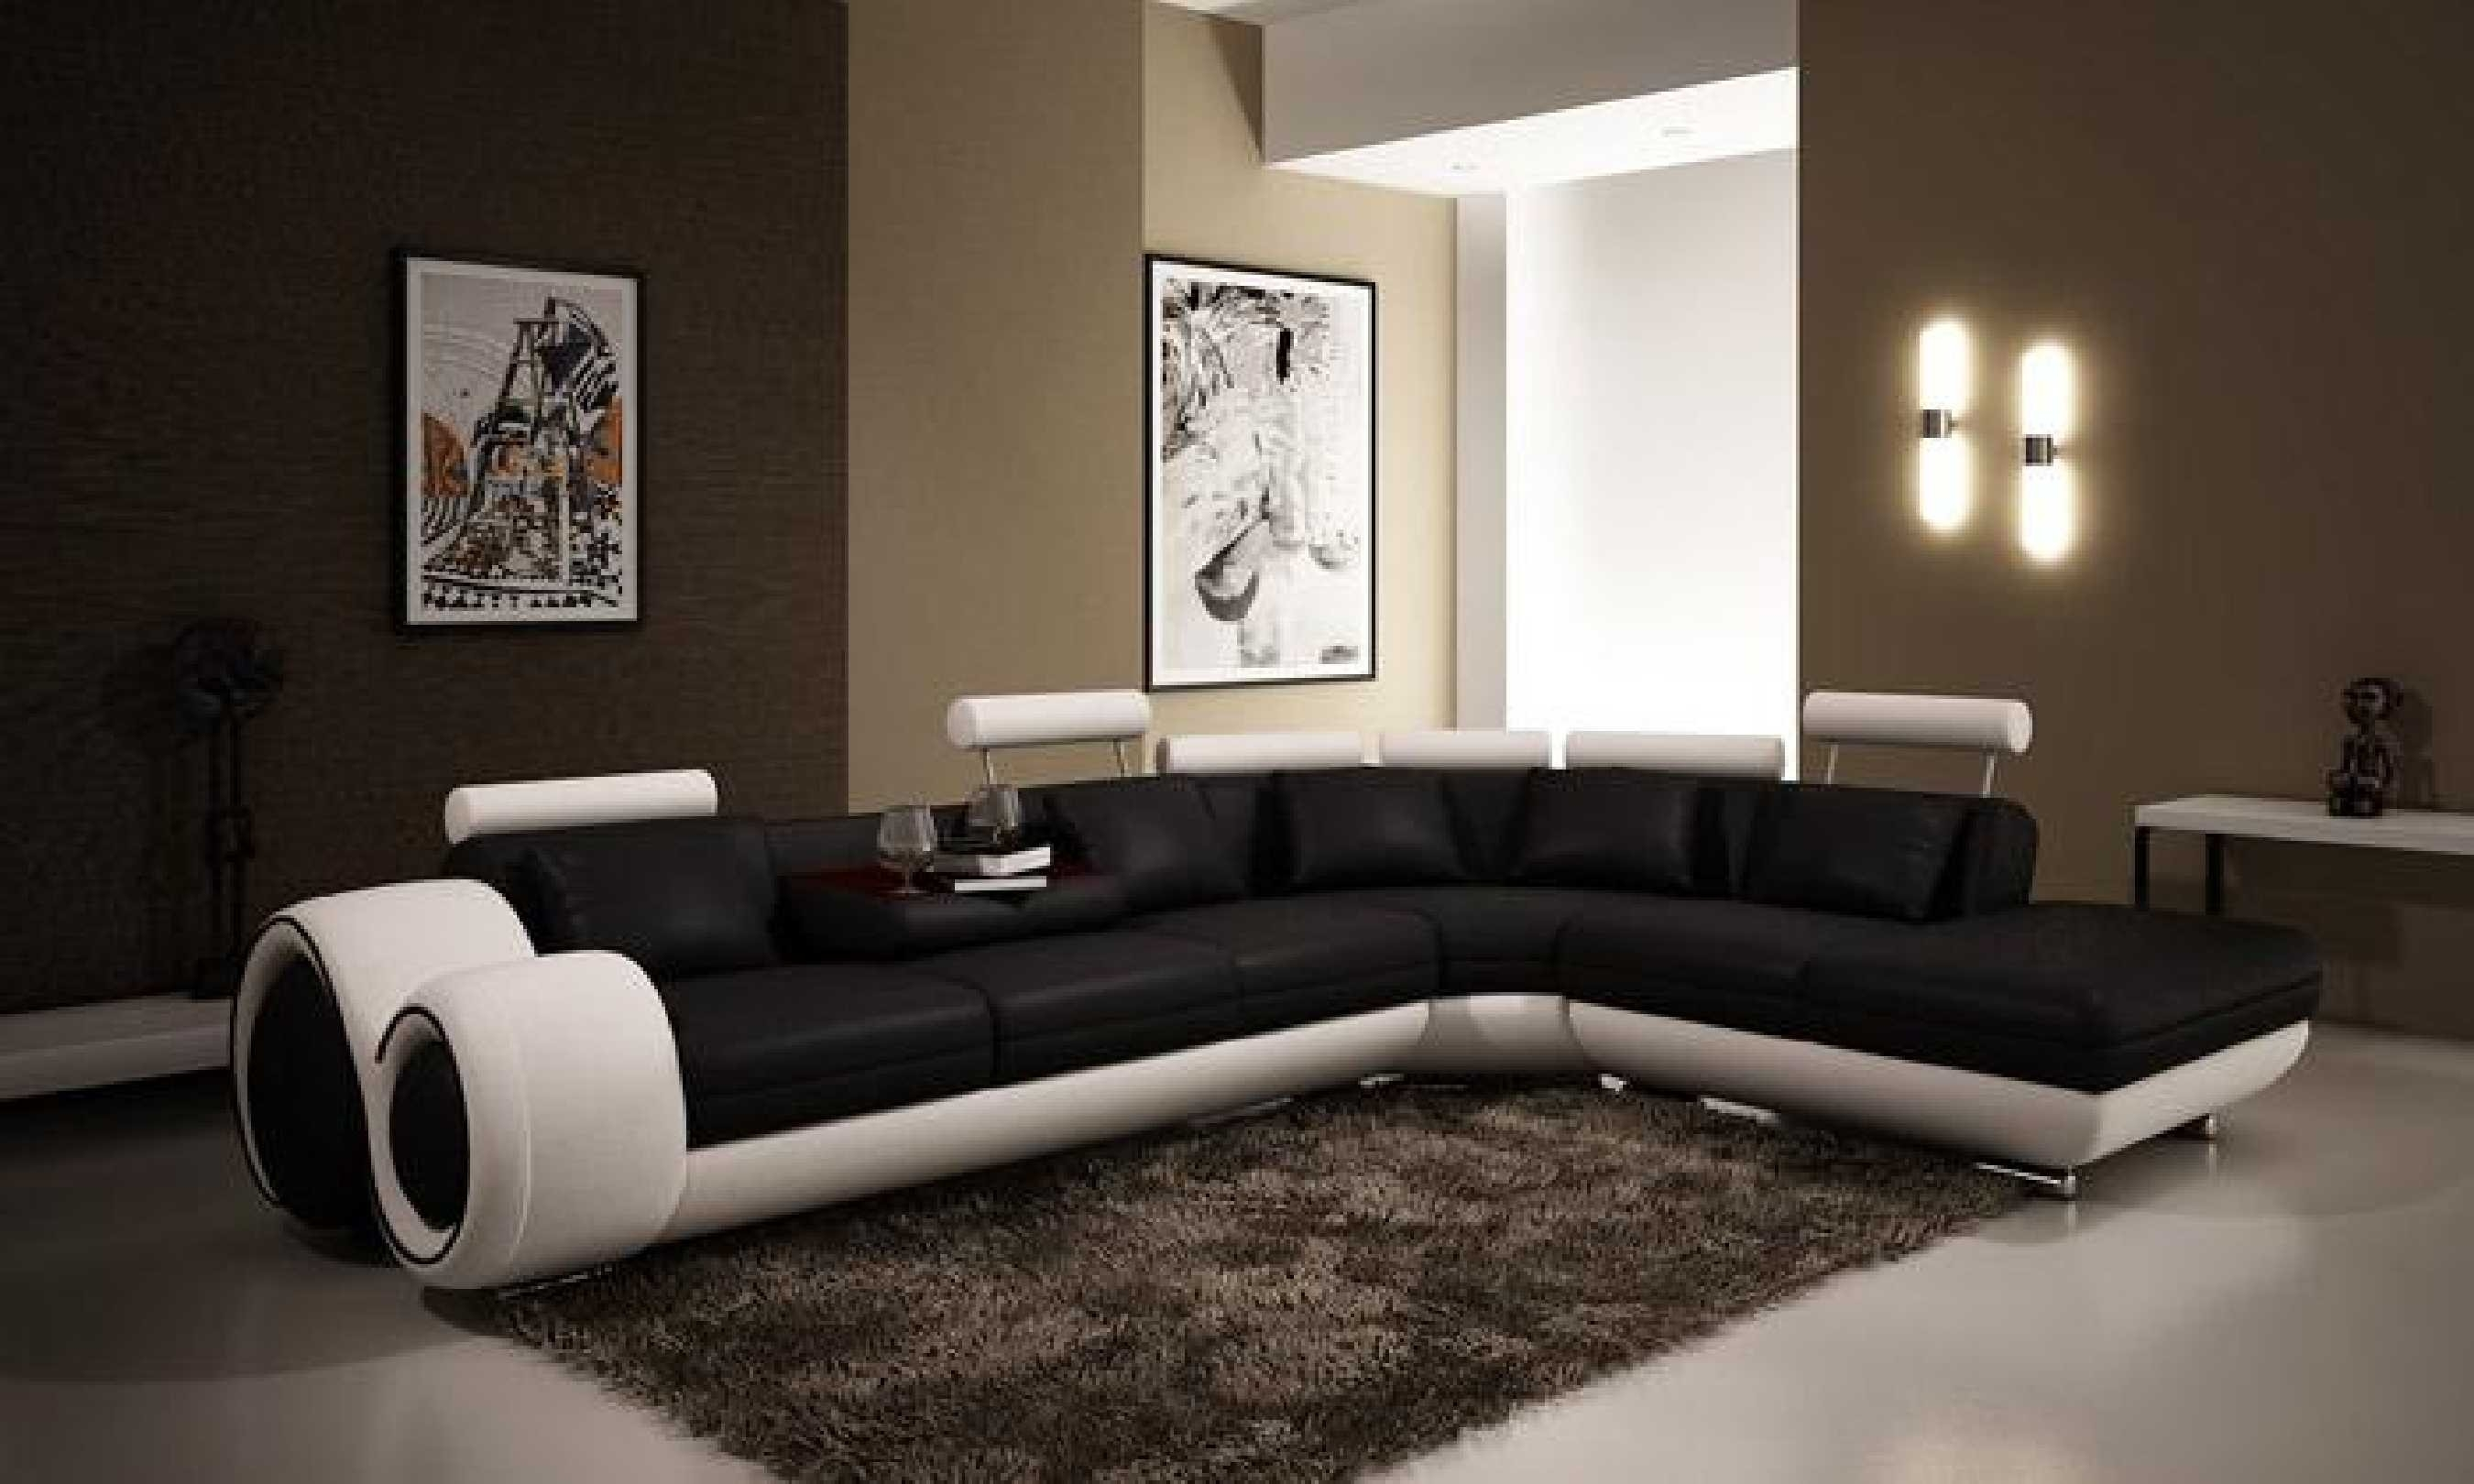 Furniture Black And White Sectional Using Black And White Inside Black And White Sectional Sofa (View 12 of 12)